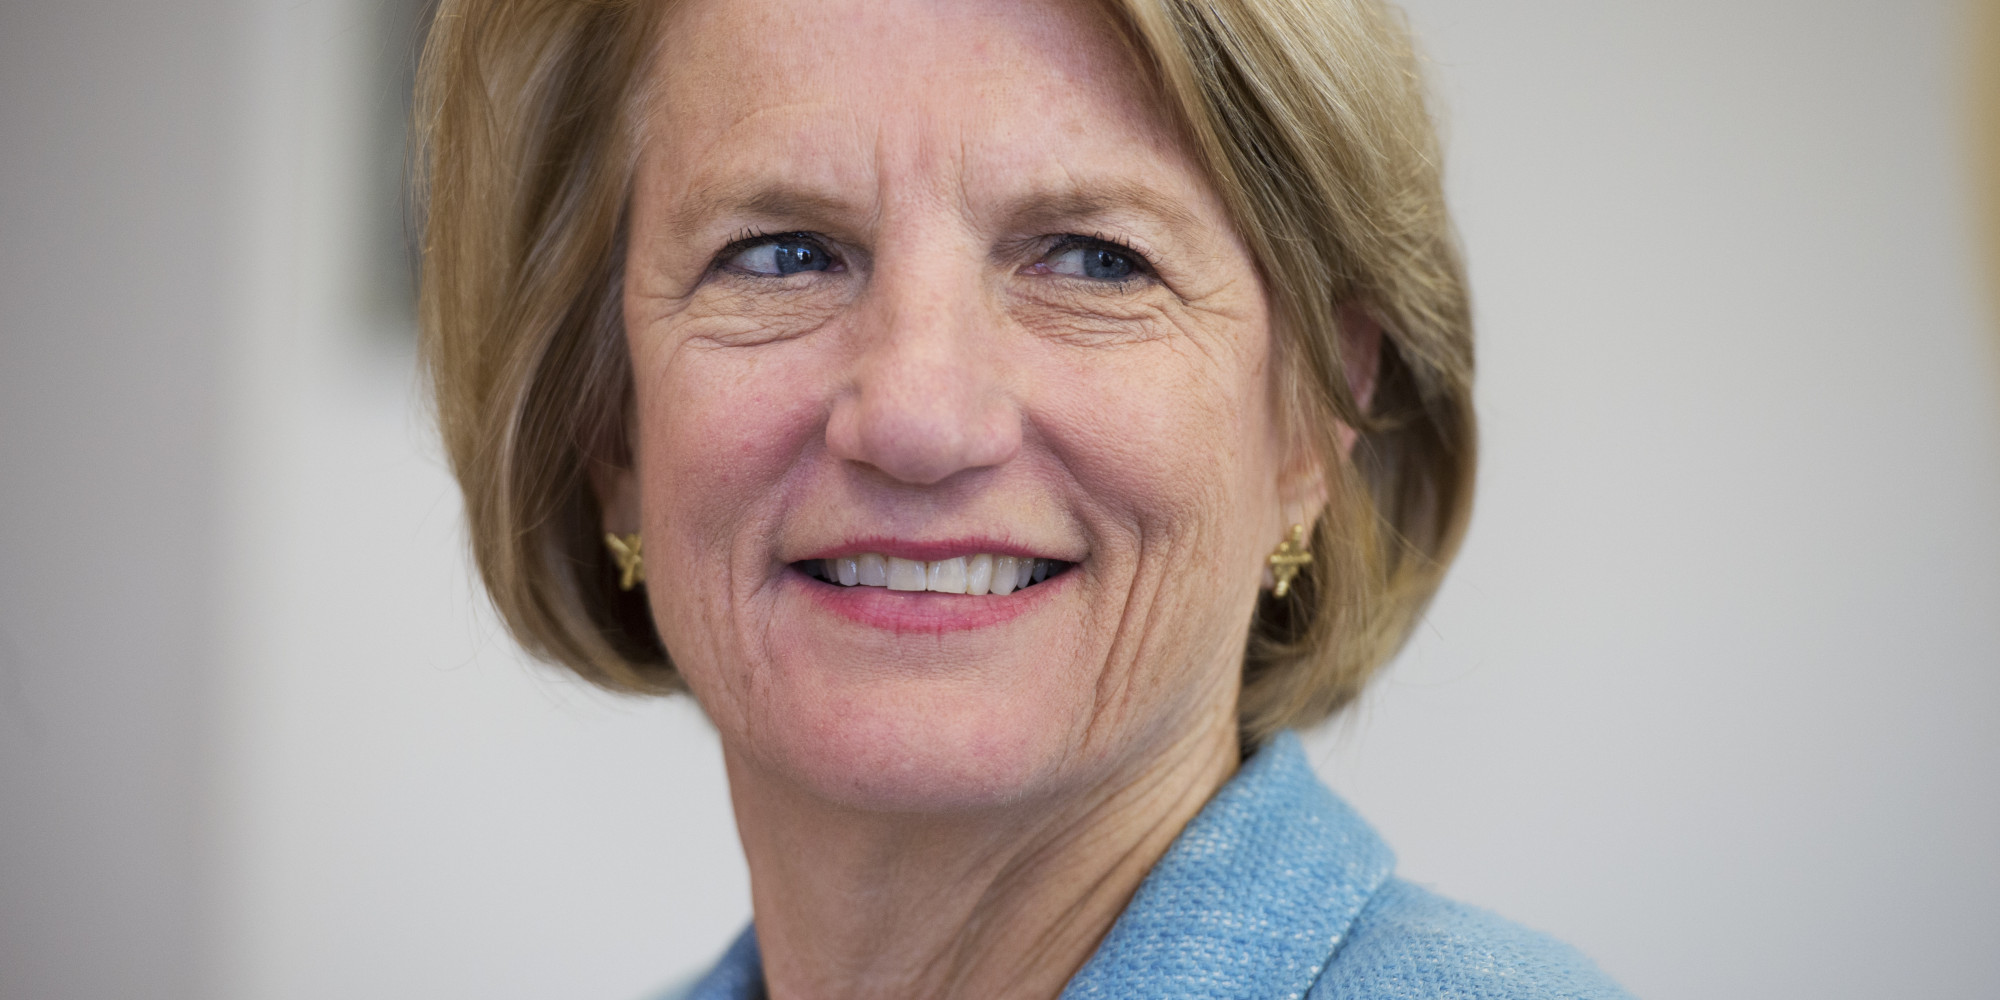 West Virginia Senate Election Results: Shelley Moore Capito